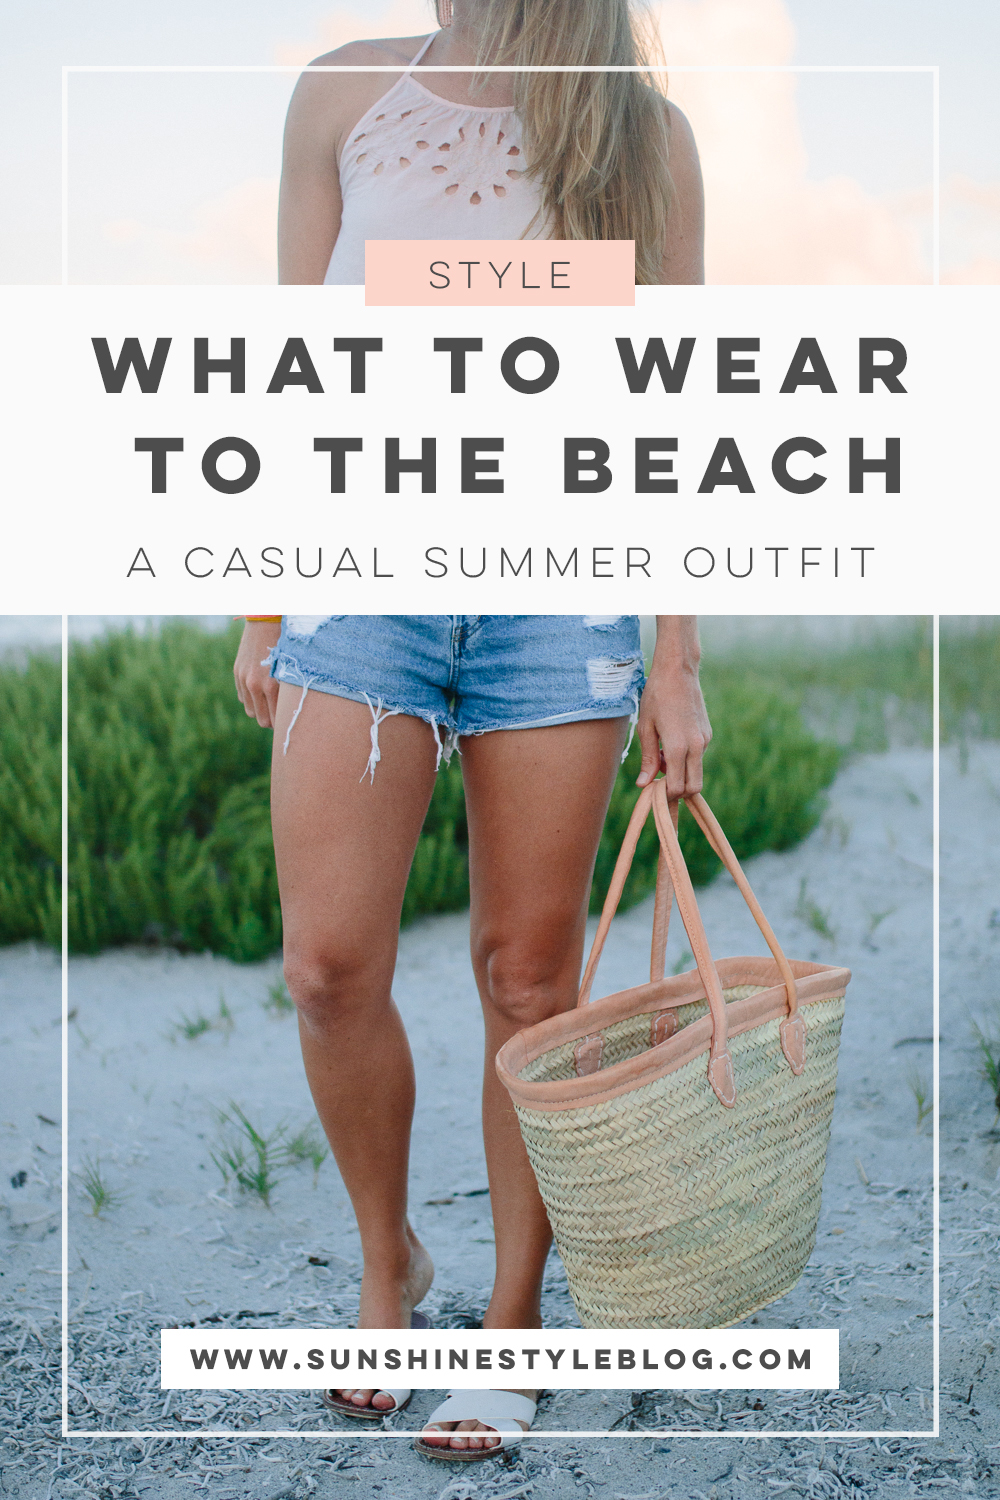 What to Wear to the Beach: A Casual Summer Outfit featuring an Aerie Crop Top, Denim Shorts, Sandals, Statement Earrings and a Beach Bag | Sunshine Style